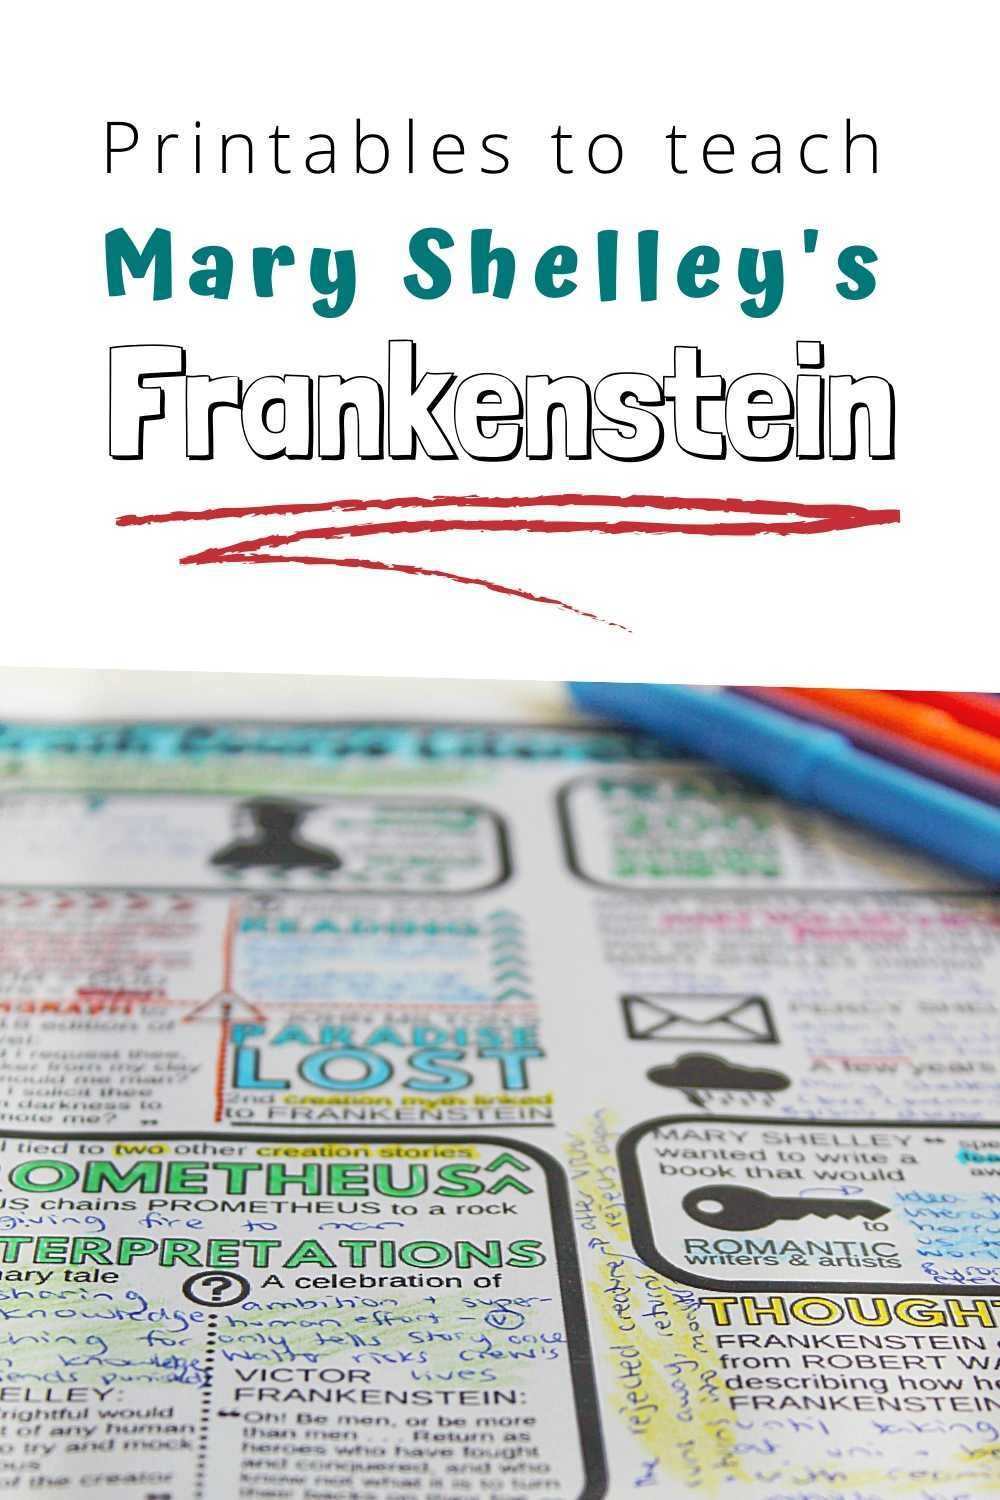 Printables For Frankenstein By Mary Shelley In 2020 Crash Course Literature Crash Course Literature